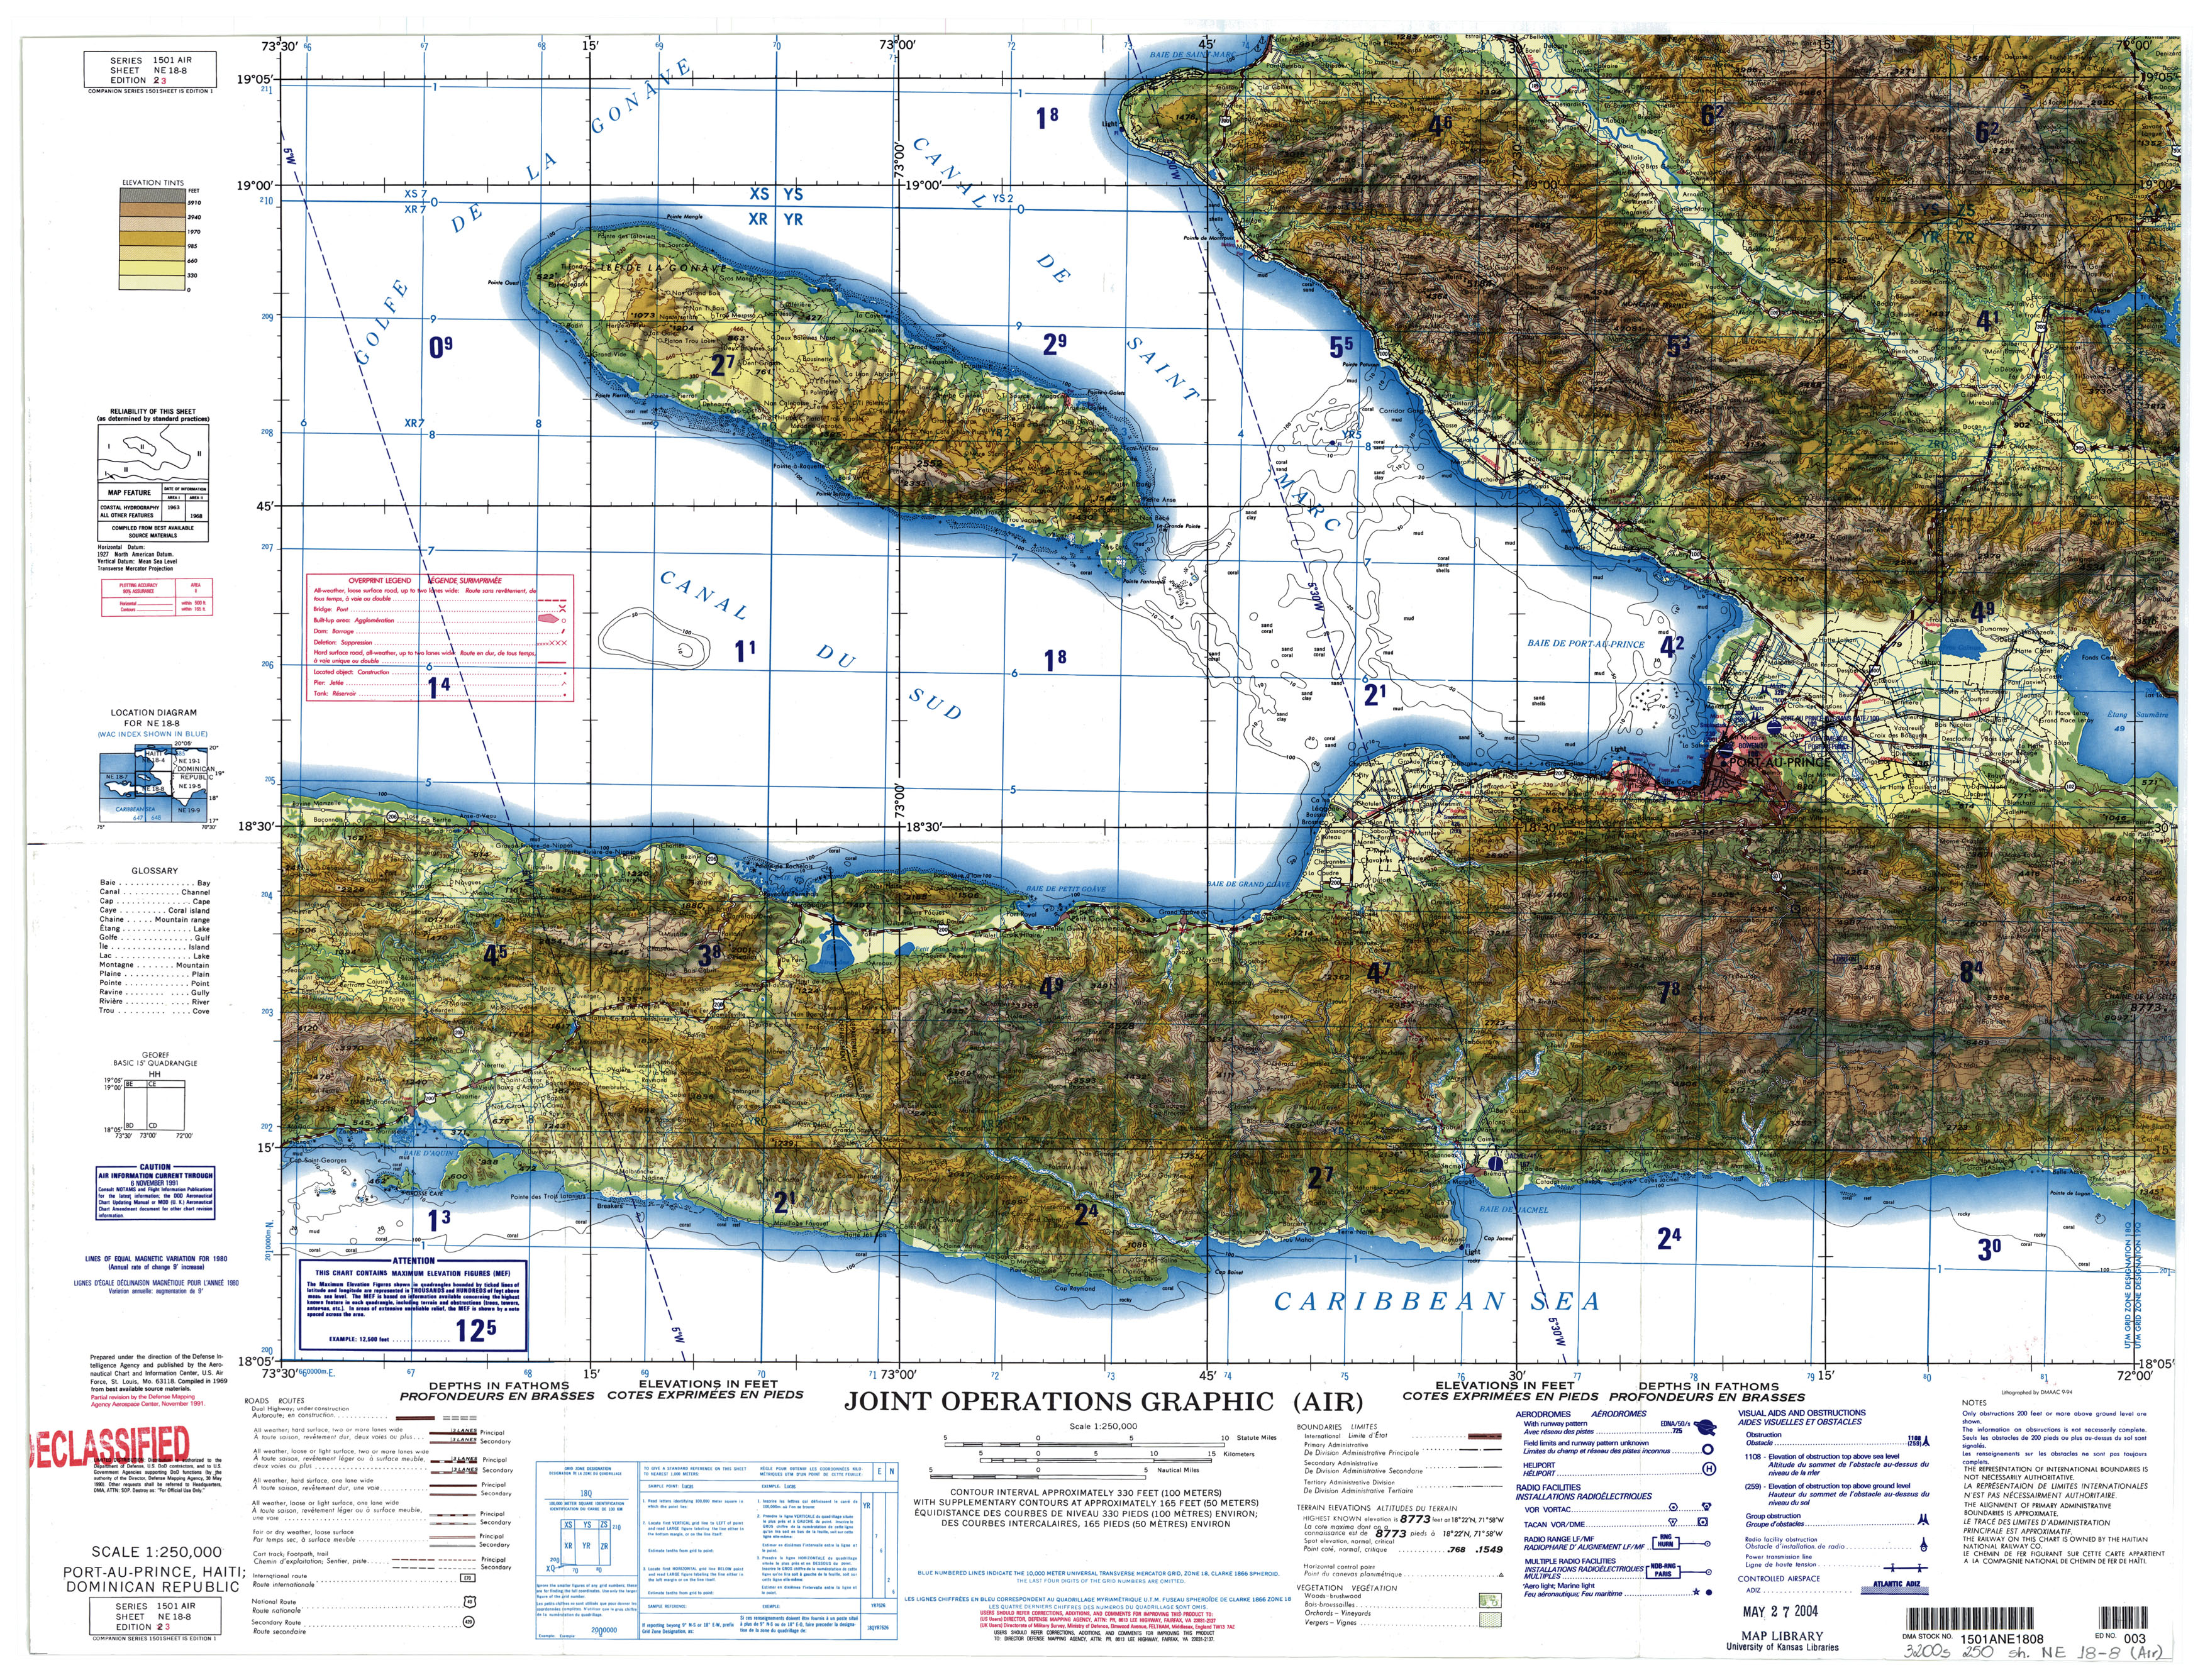 Topographic Map Of Haiti.Haiti Joint Operations Graphic Perry Castaneda Map Collection Ut